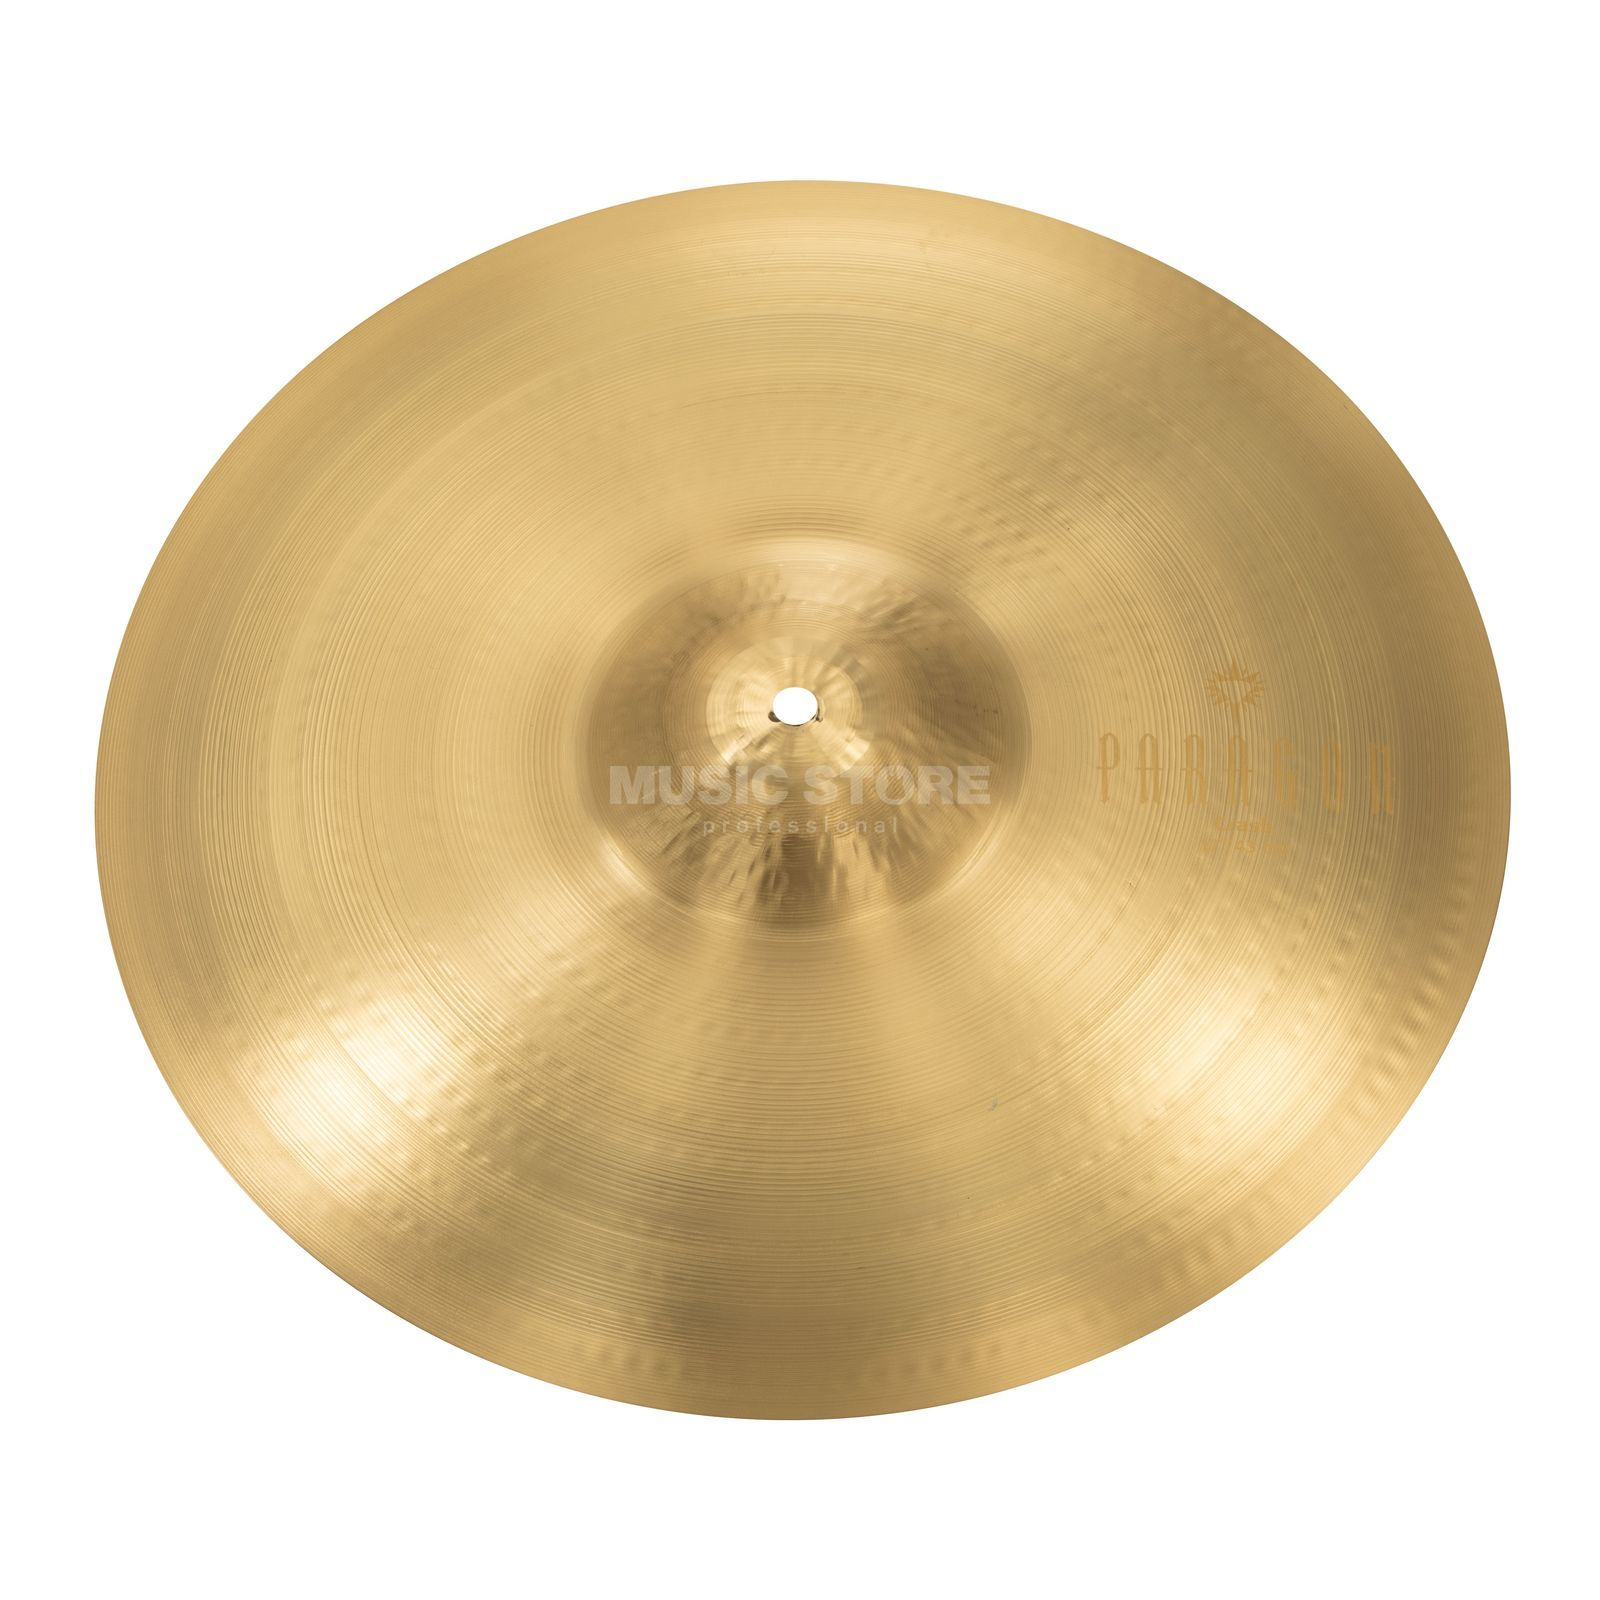 "Sabian Paragon Crash 17"" Изображение товара"